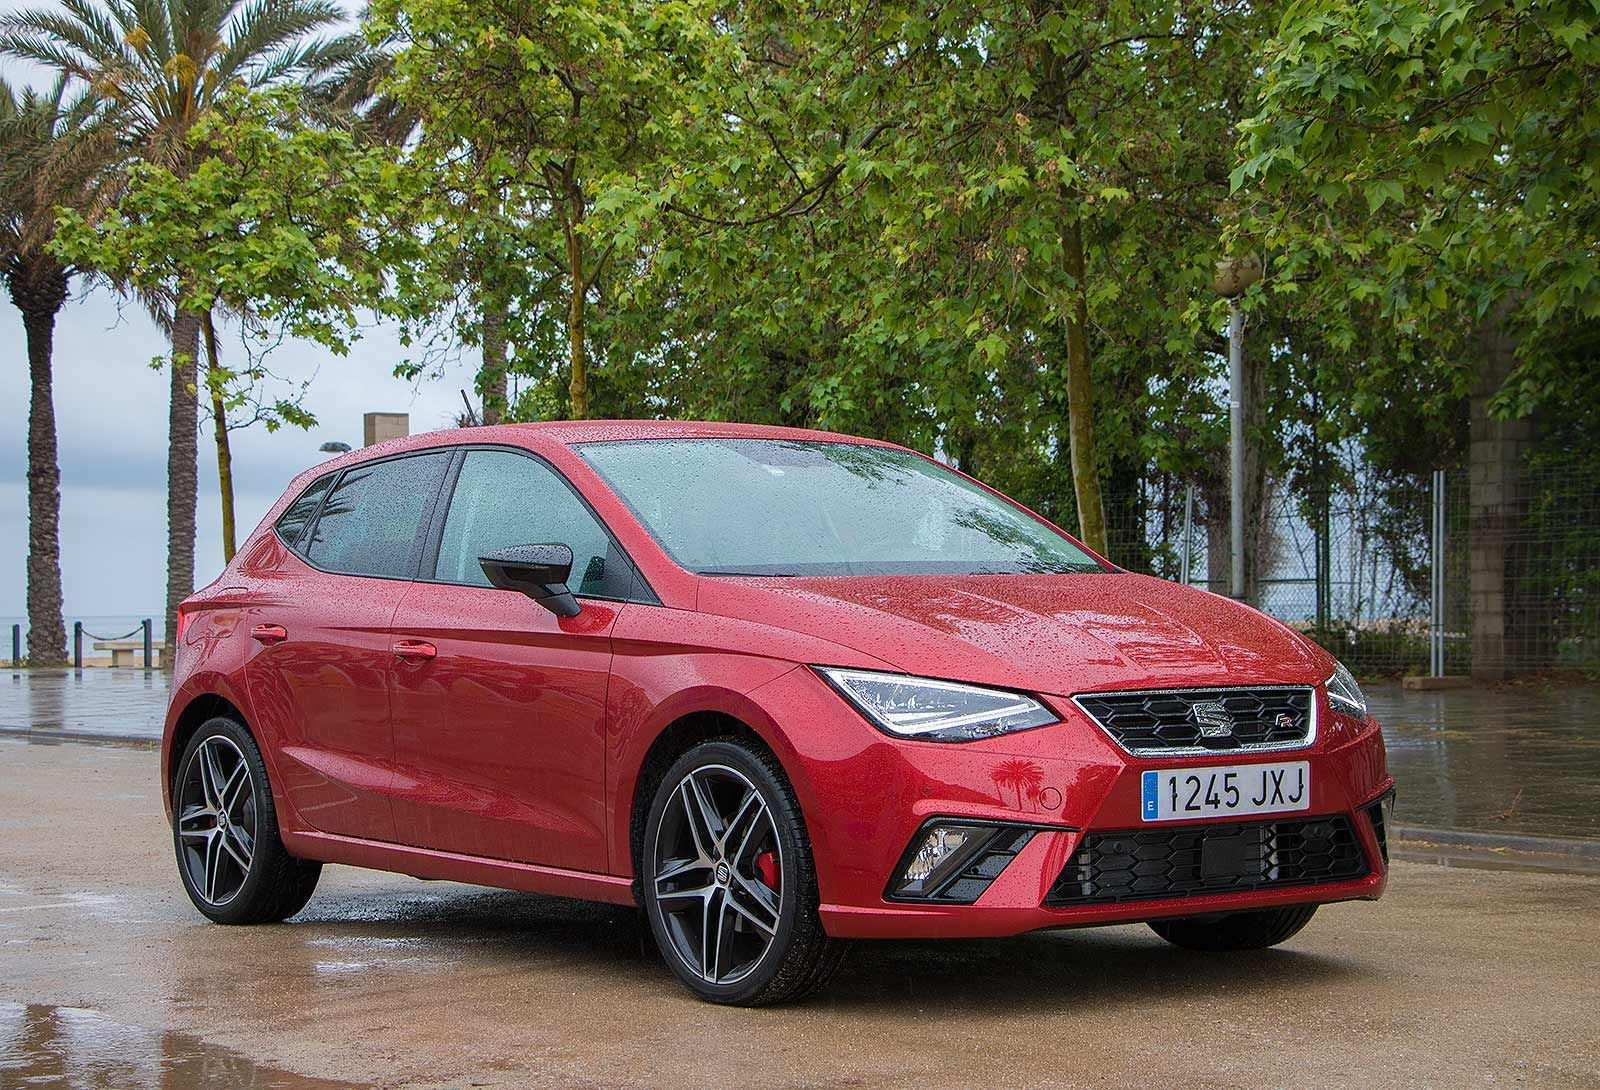 46 Concept of 2020 Seat Ibiza 2018 Specs and Review with 2020 Seat Ibiza 2018